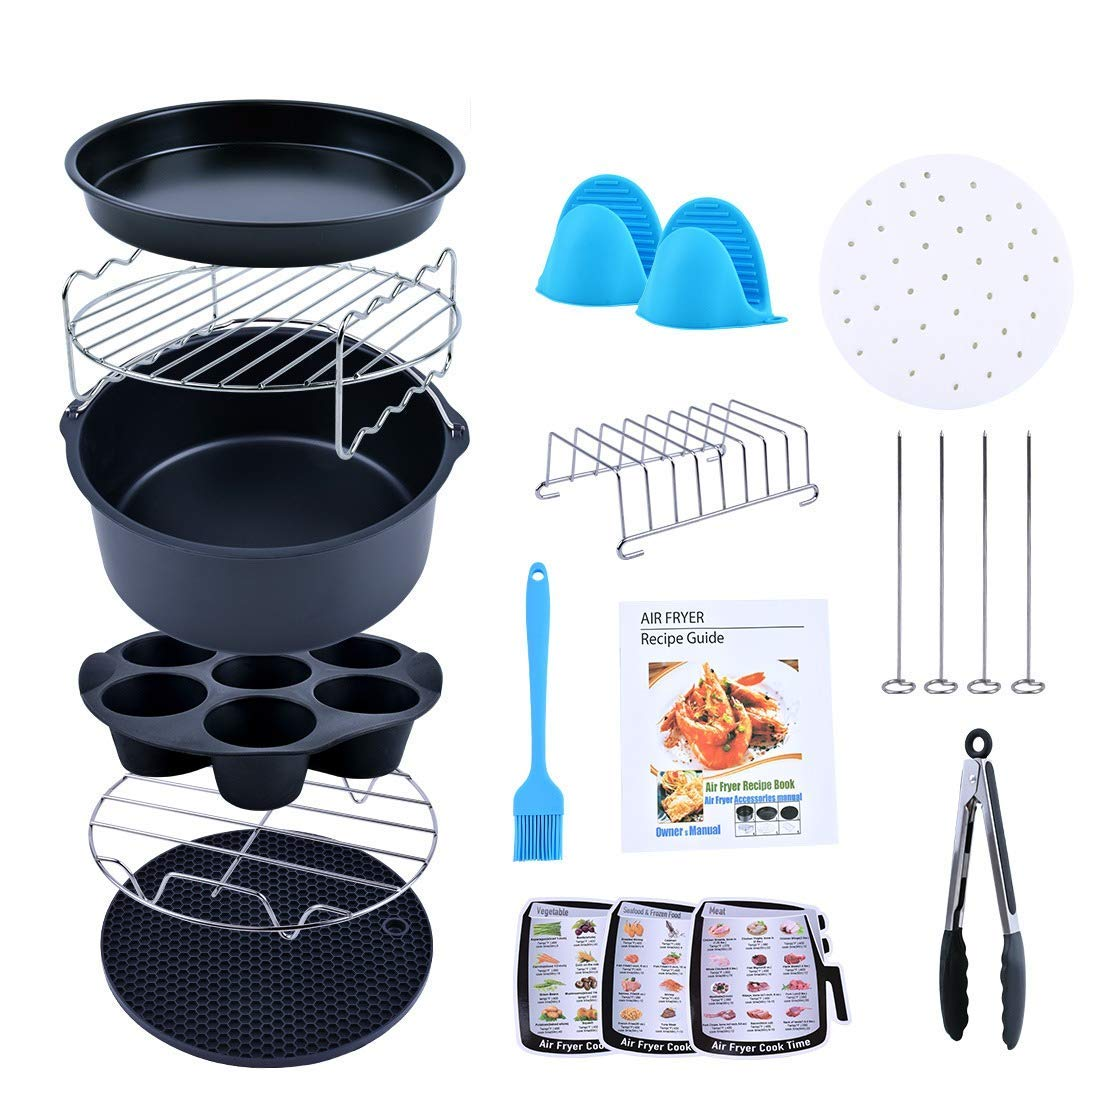 Creativefine Air Fryer Accessories Kit 12 pcs-Roasting Racks with Skewers, Silicone Muffin Pan, 8'' Pizza Pan, 100pcs Parchment Liners, Basting Brush, For 5.3 QT GoWise, Philips, Cozyna or Larger by Creativefine